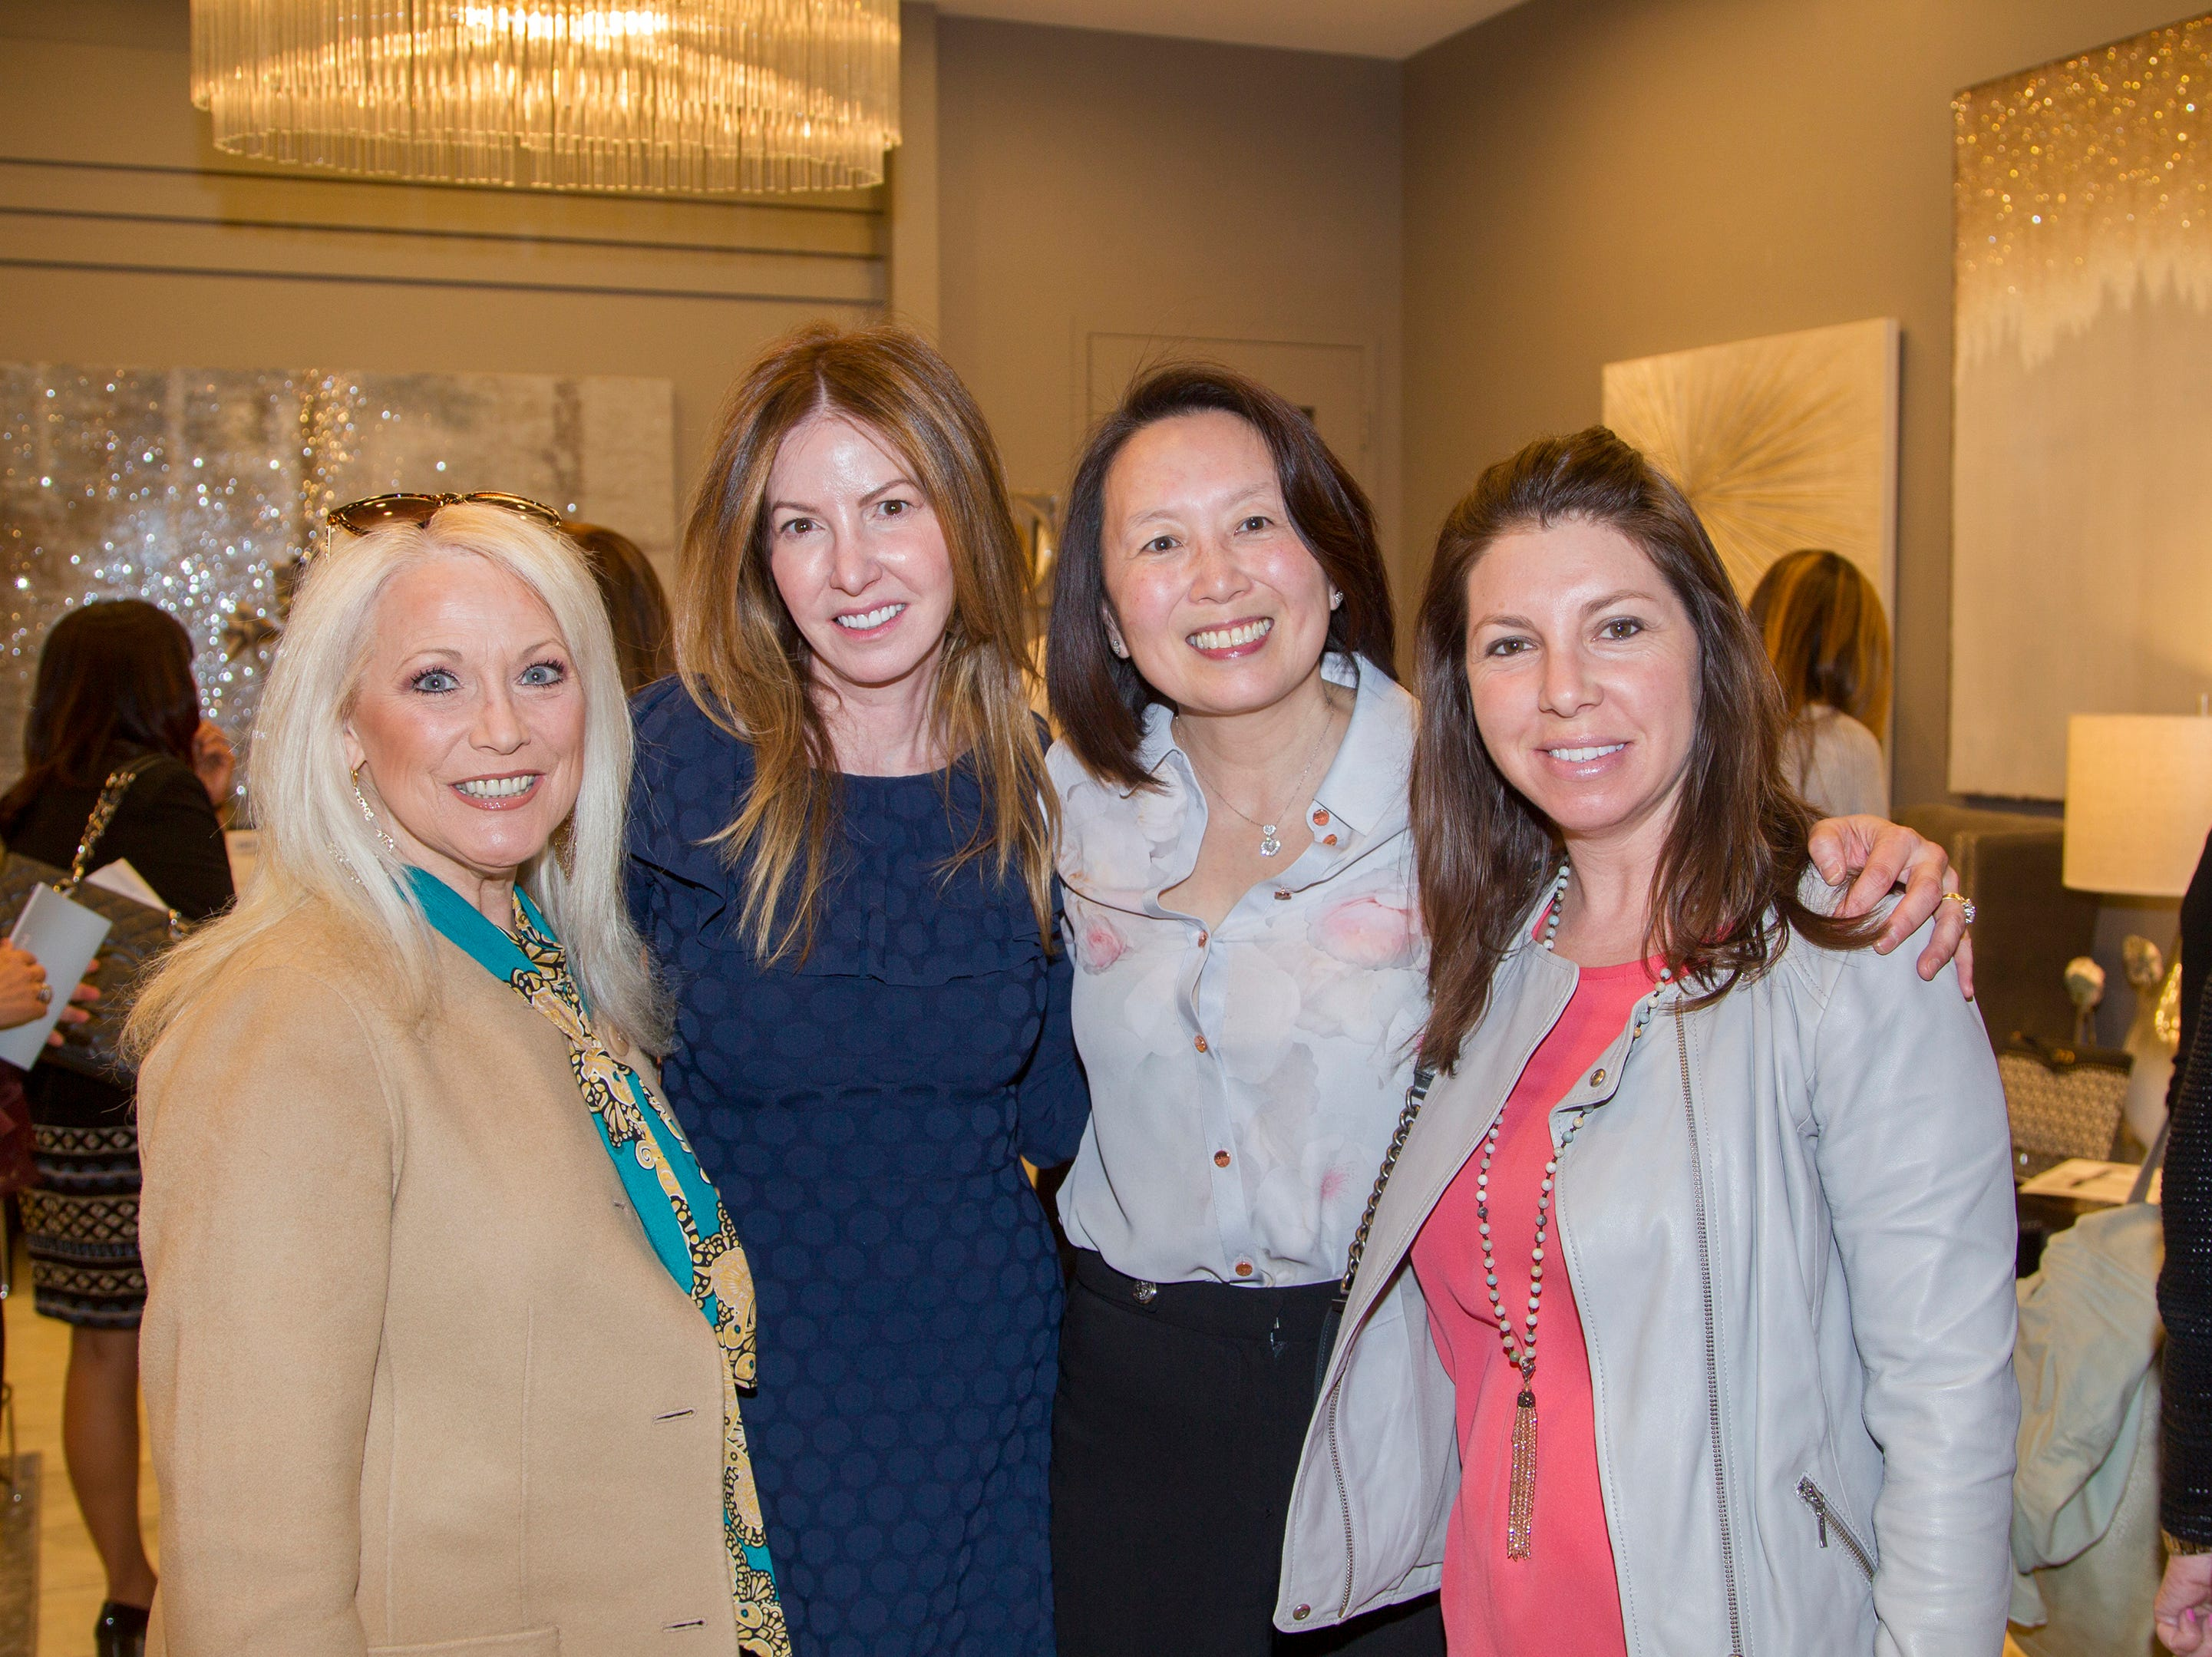 Cathy Tatel, Paula Hian, Jean Holden, Jaime Botta. Westfield Garden State Plaza held its Meet the Artist & Trend Show benefitting The Valley Hospital Auxillary Saddle River Branch. 04/03/2019